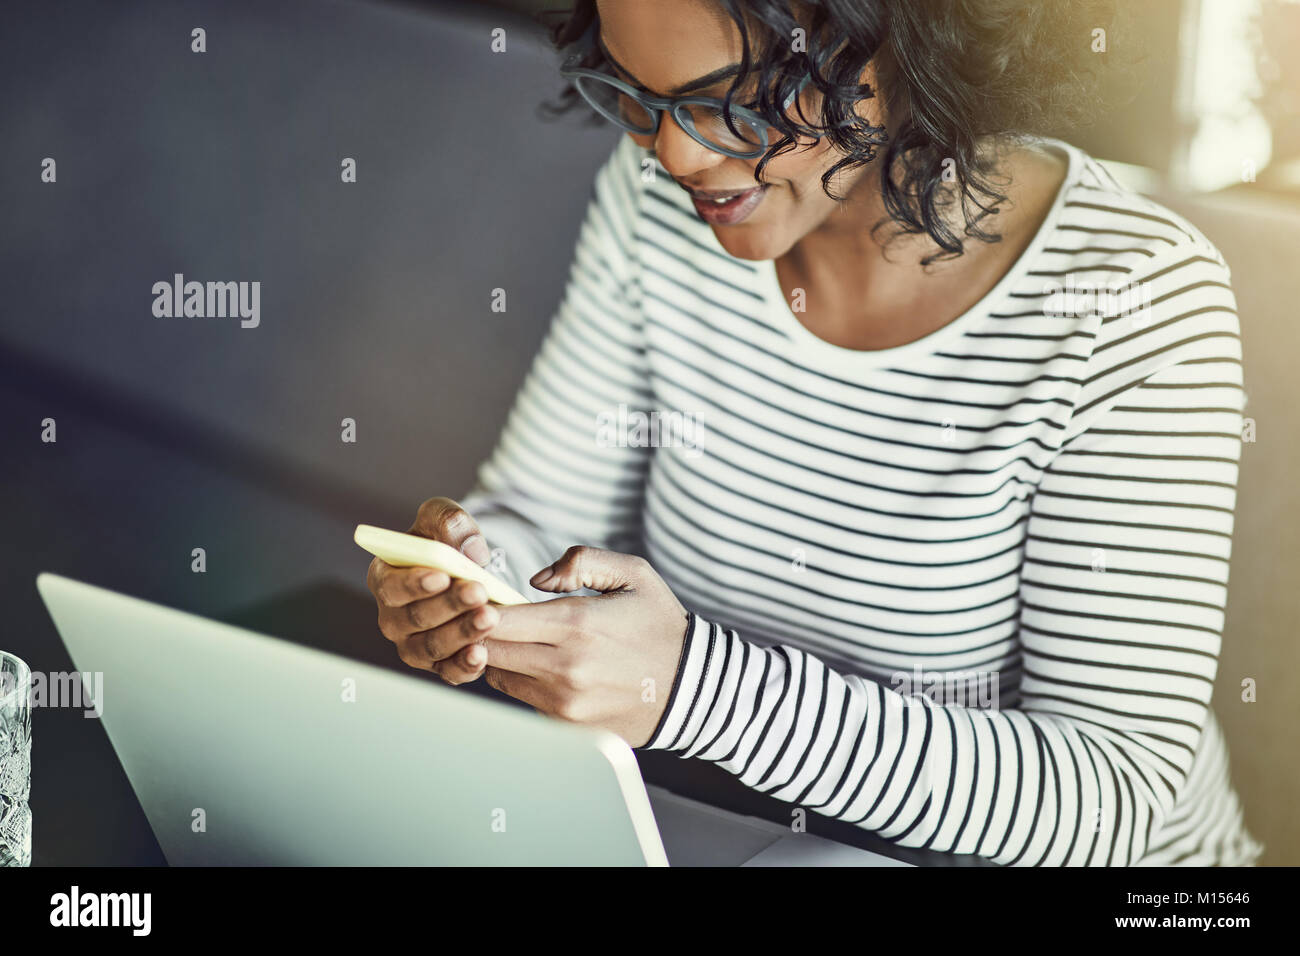 Young African woman wearing glasses sitting alone at a table sending a text message on her cellphone and working - Stock Image